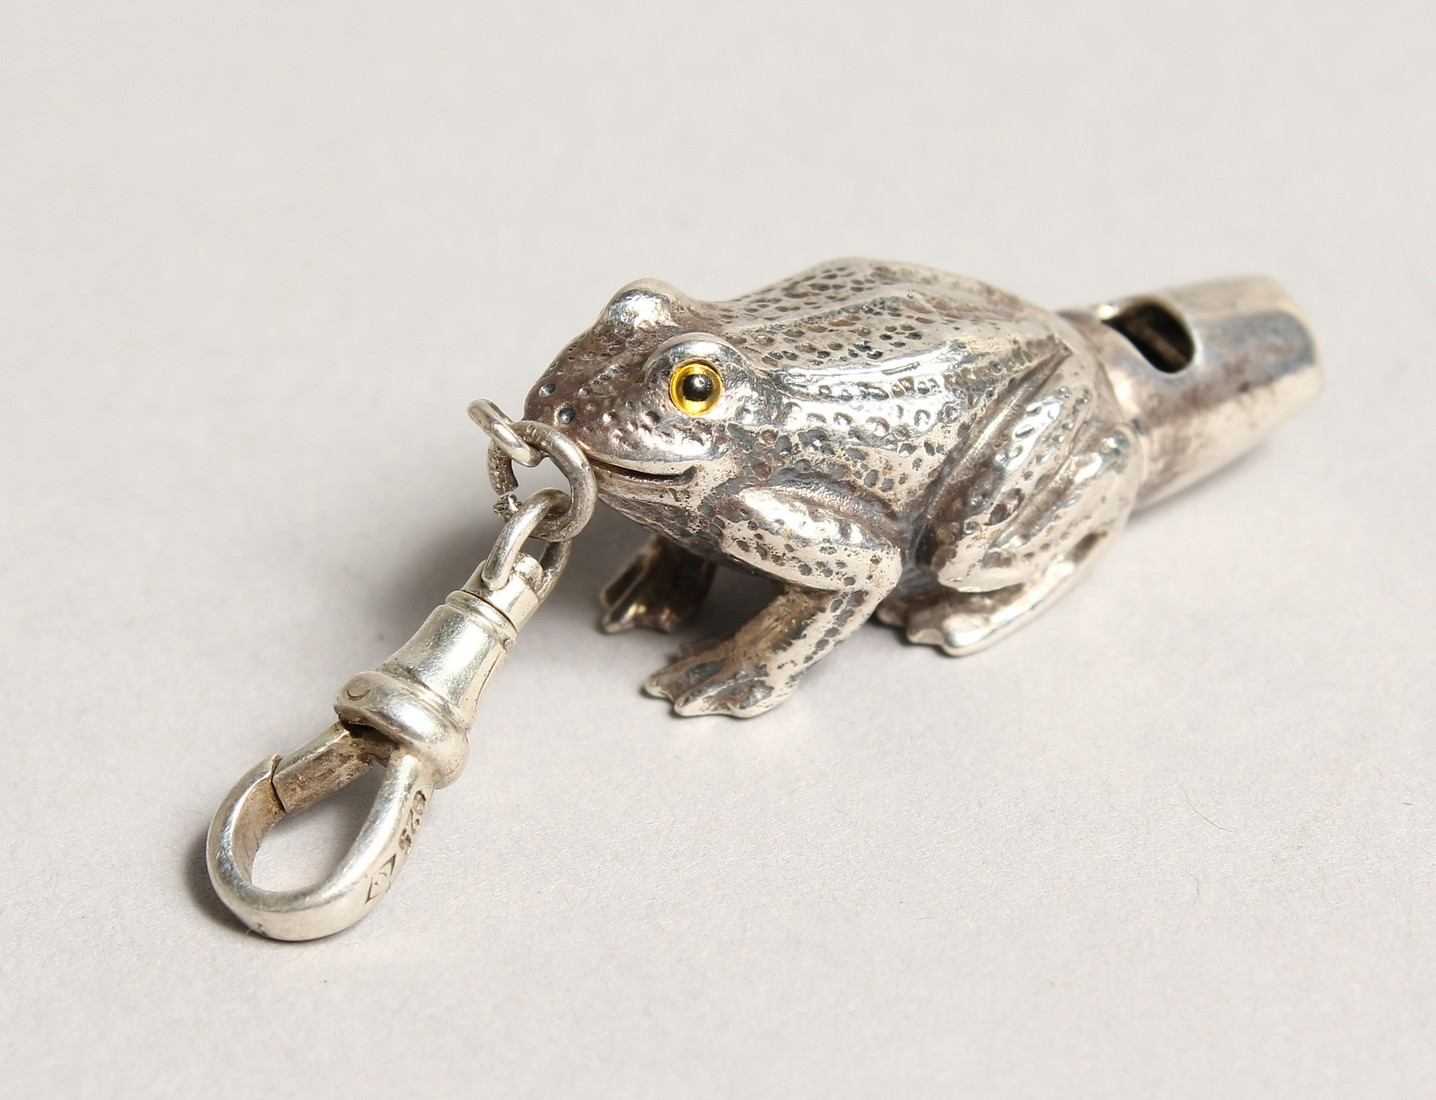 A NOVELTY SILVER FROG WHISTLE